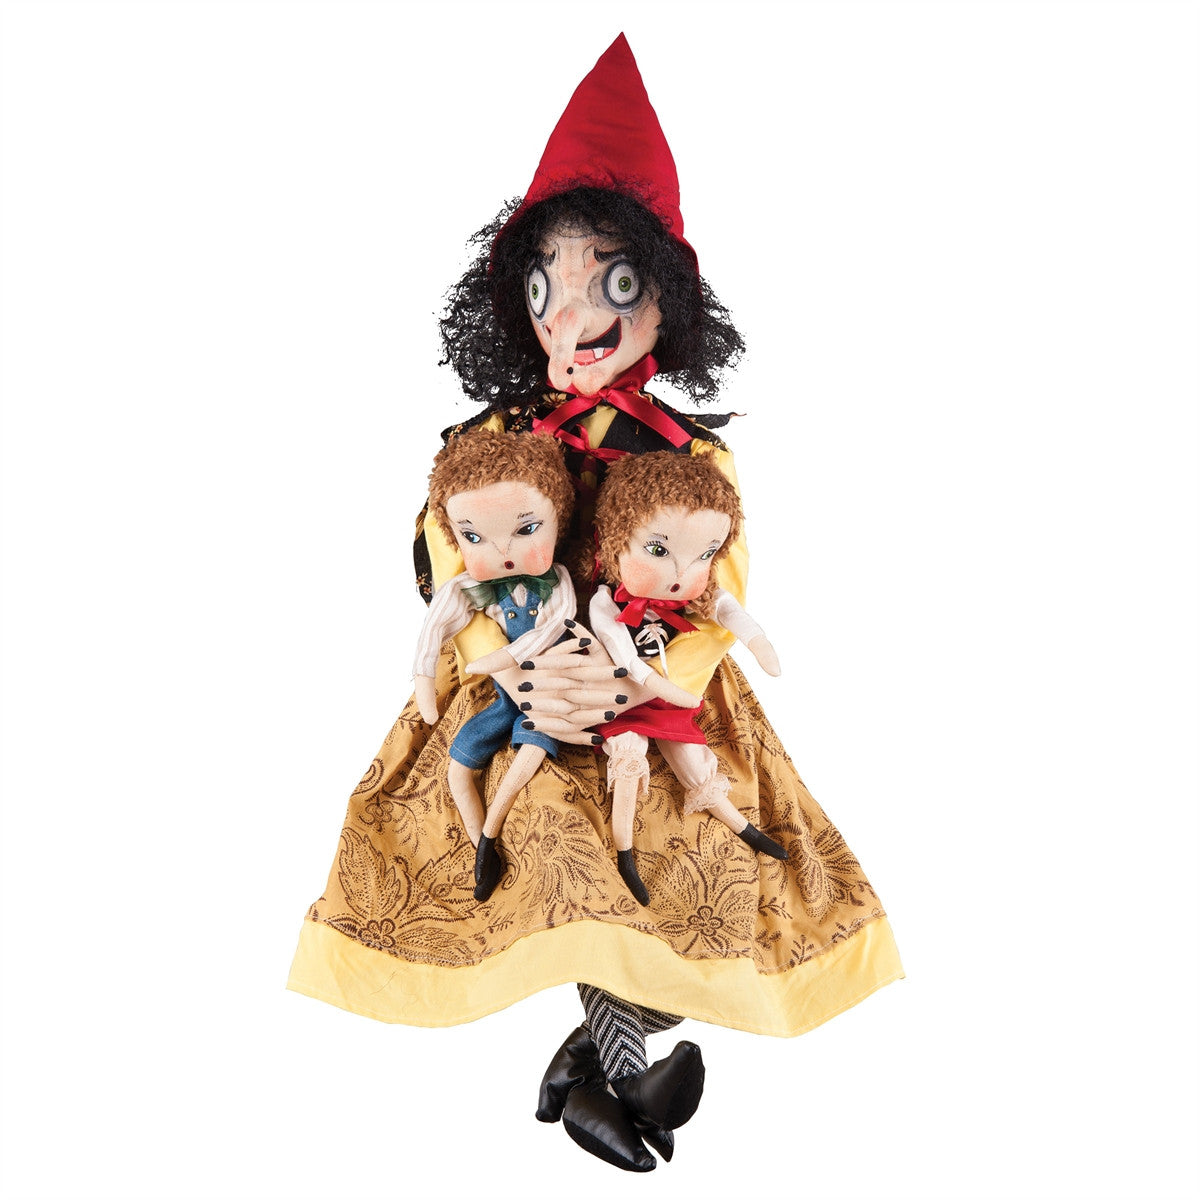 Joe Spencer Sadie Old Hag with Hansel & Gretel Dolls